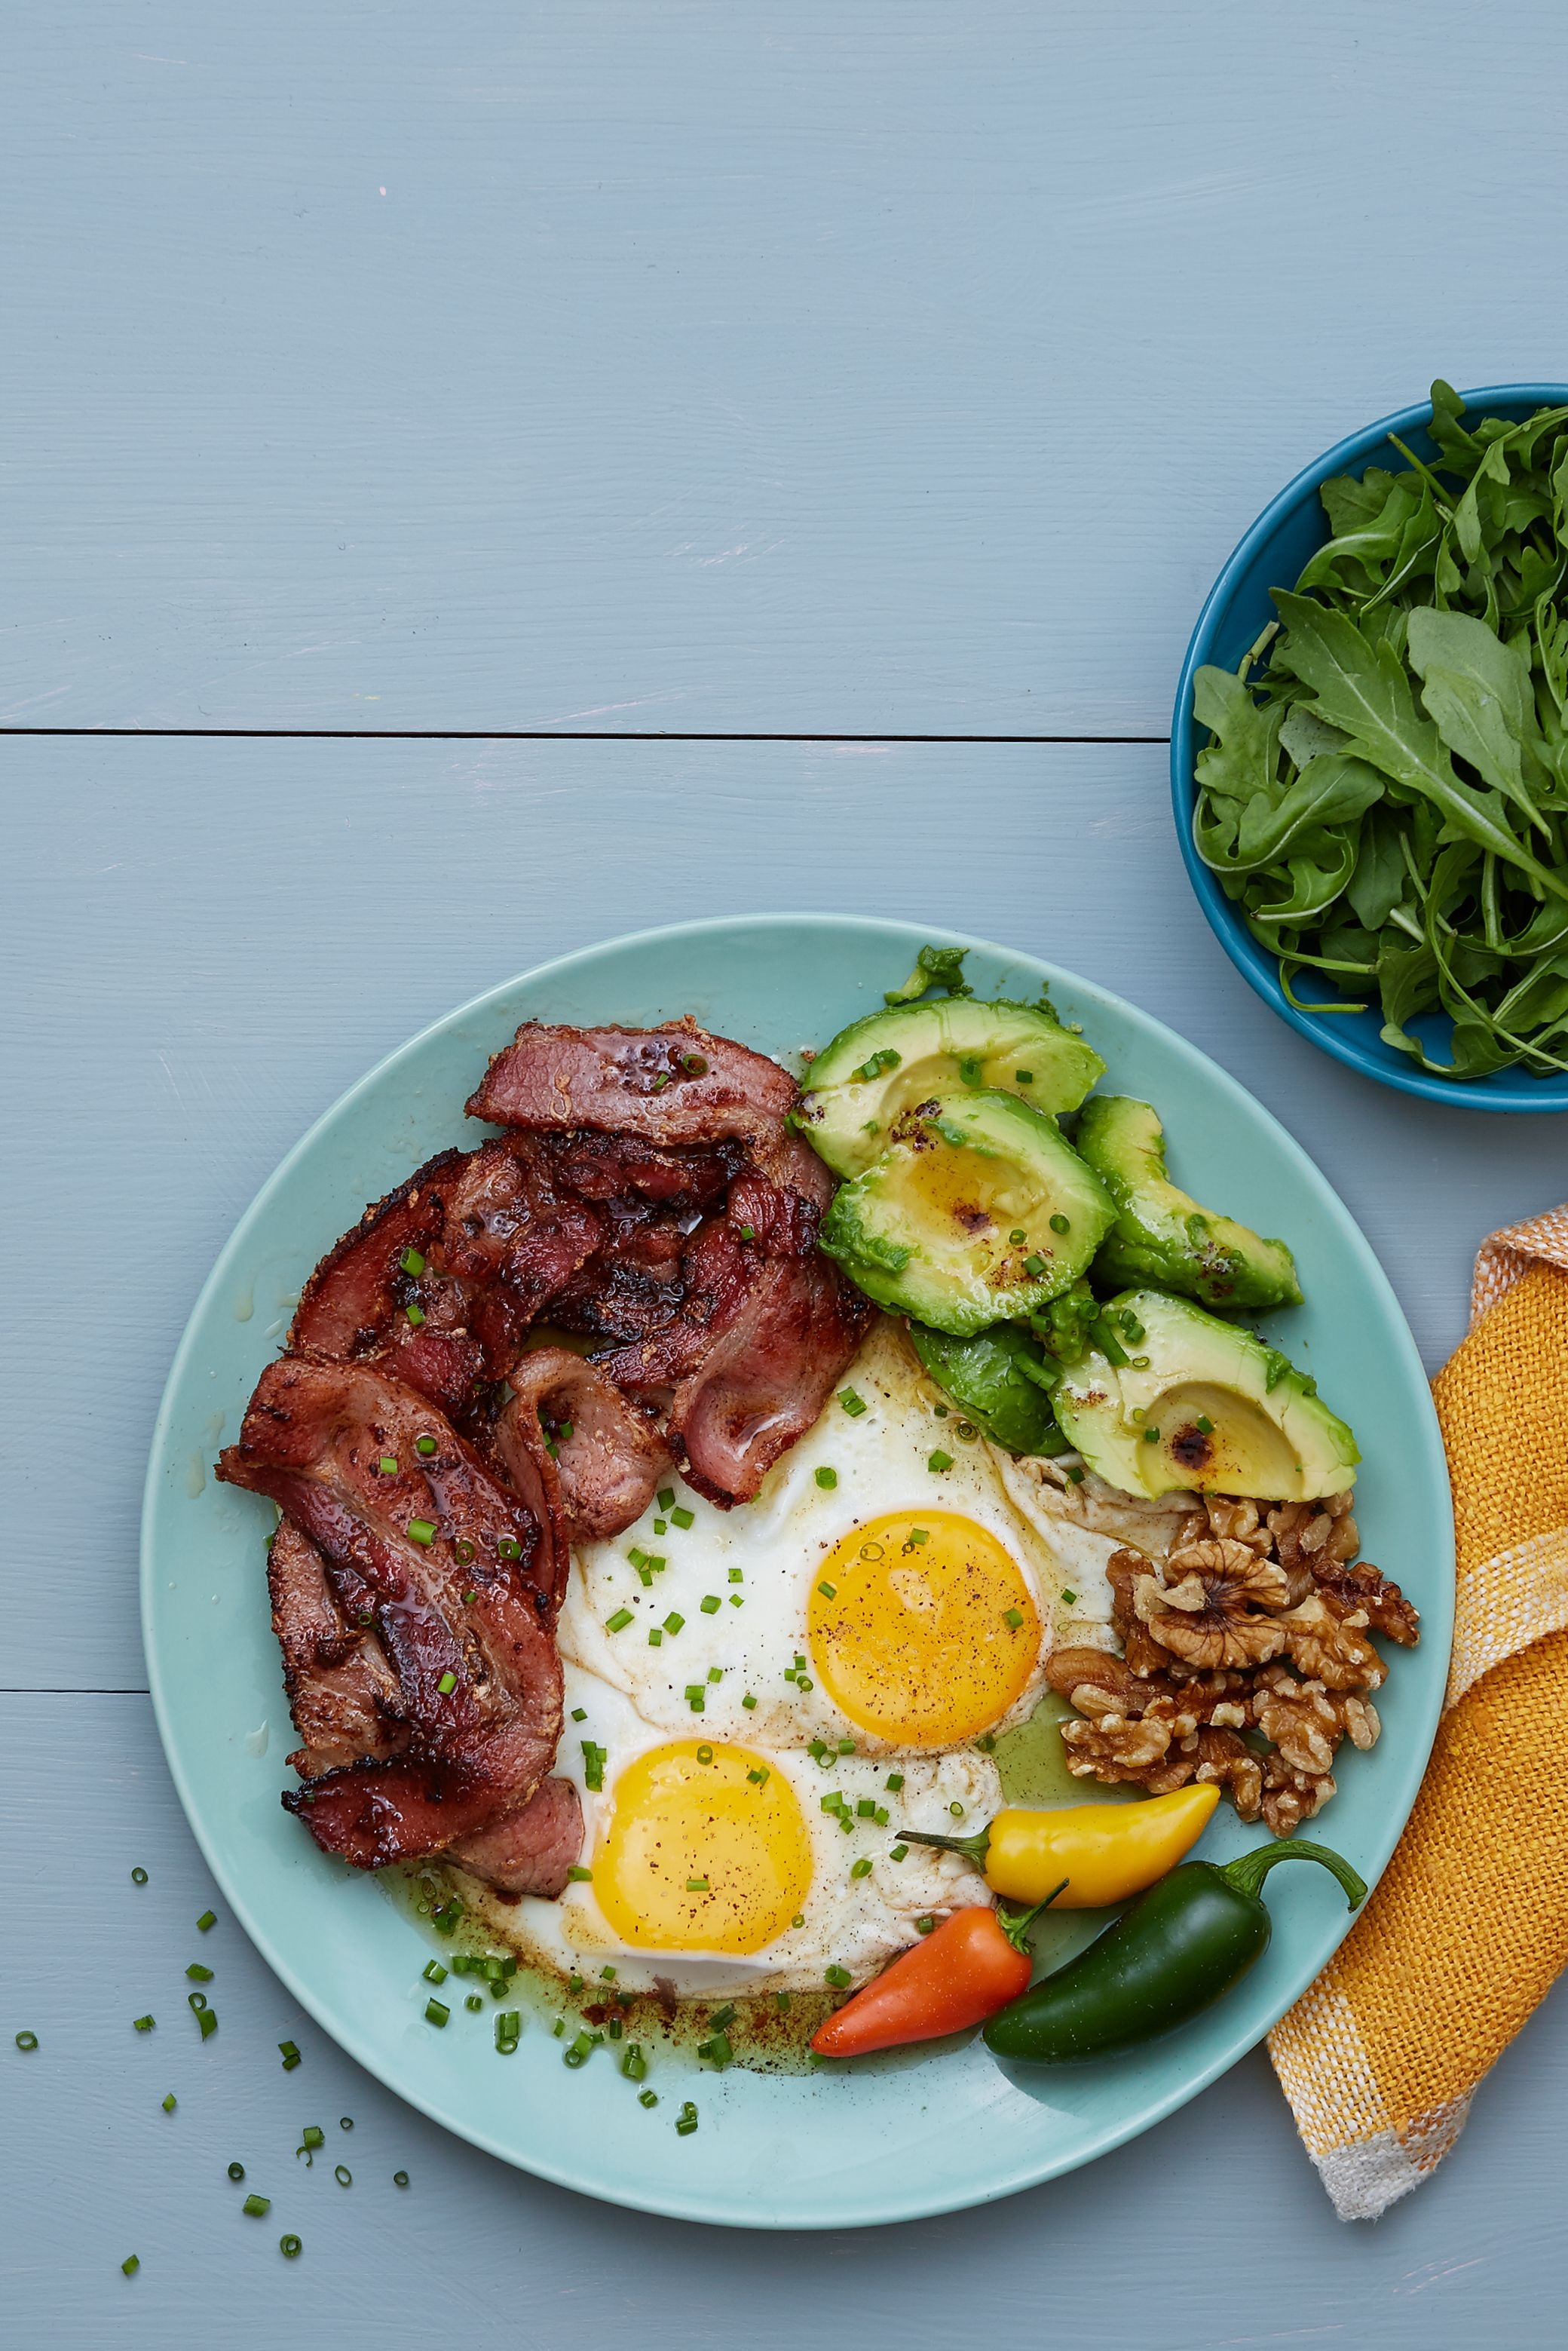 Keto bacon and eggs plate Recipe Banting recipes, Keto